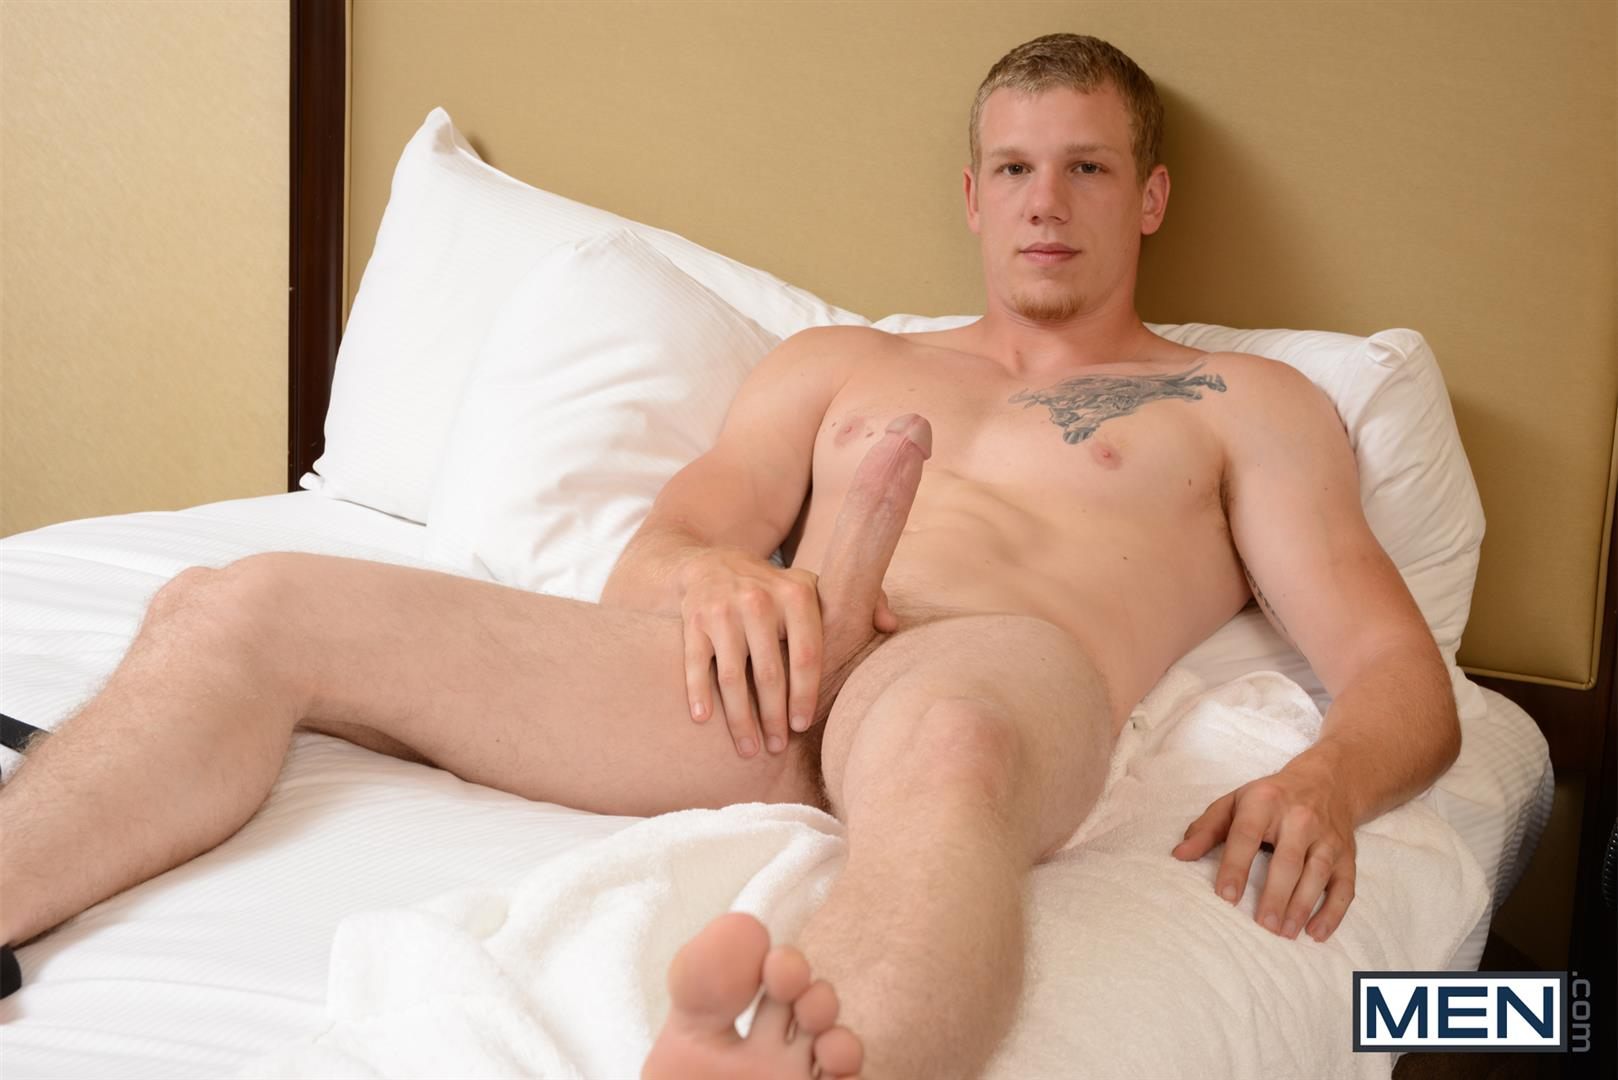 Men-Str8-to-Gay-Johnny-Forza-and-Mike-Edge-Fucking-Big-Cocks-Amateur-Gay-Porn-07 Johnny Forza Gives Mike Edge A Hotel Hookup Hard Fucking